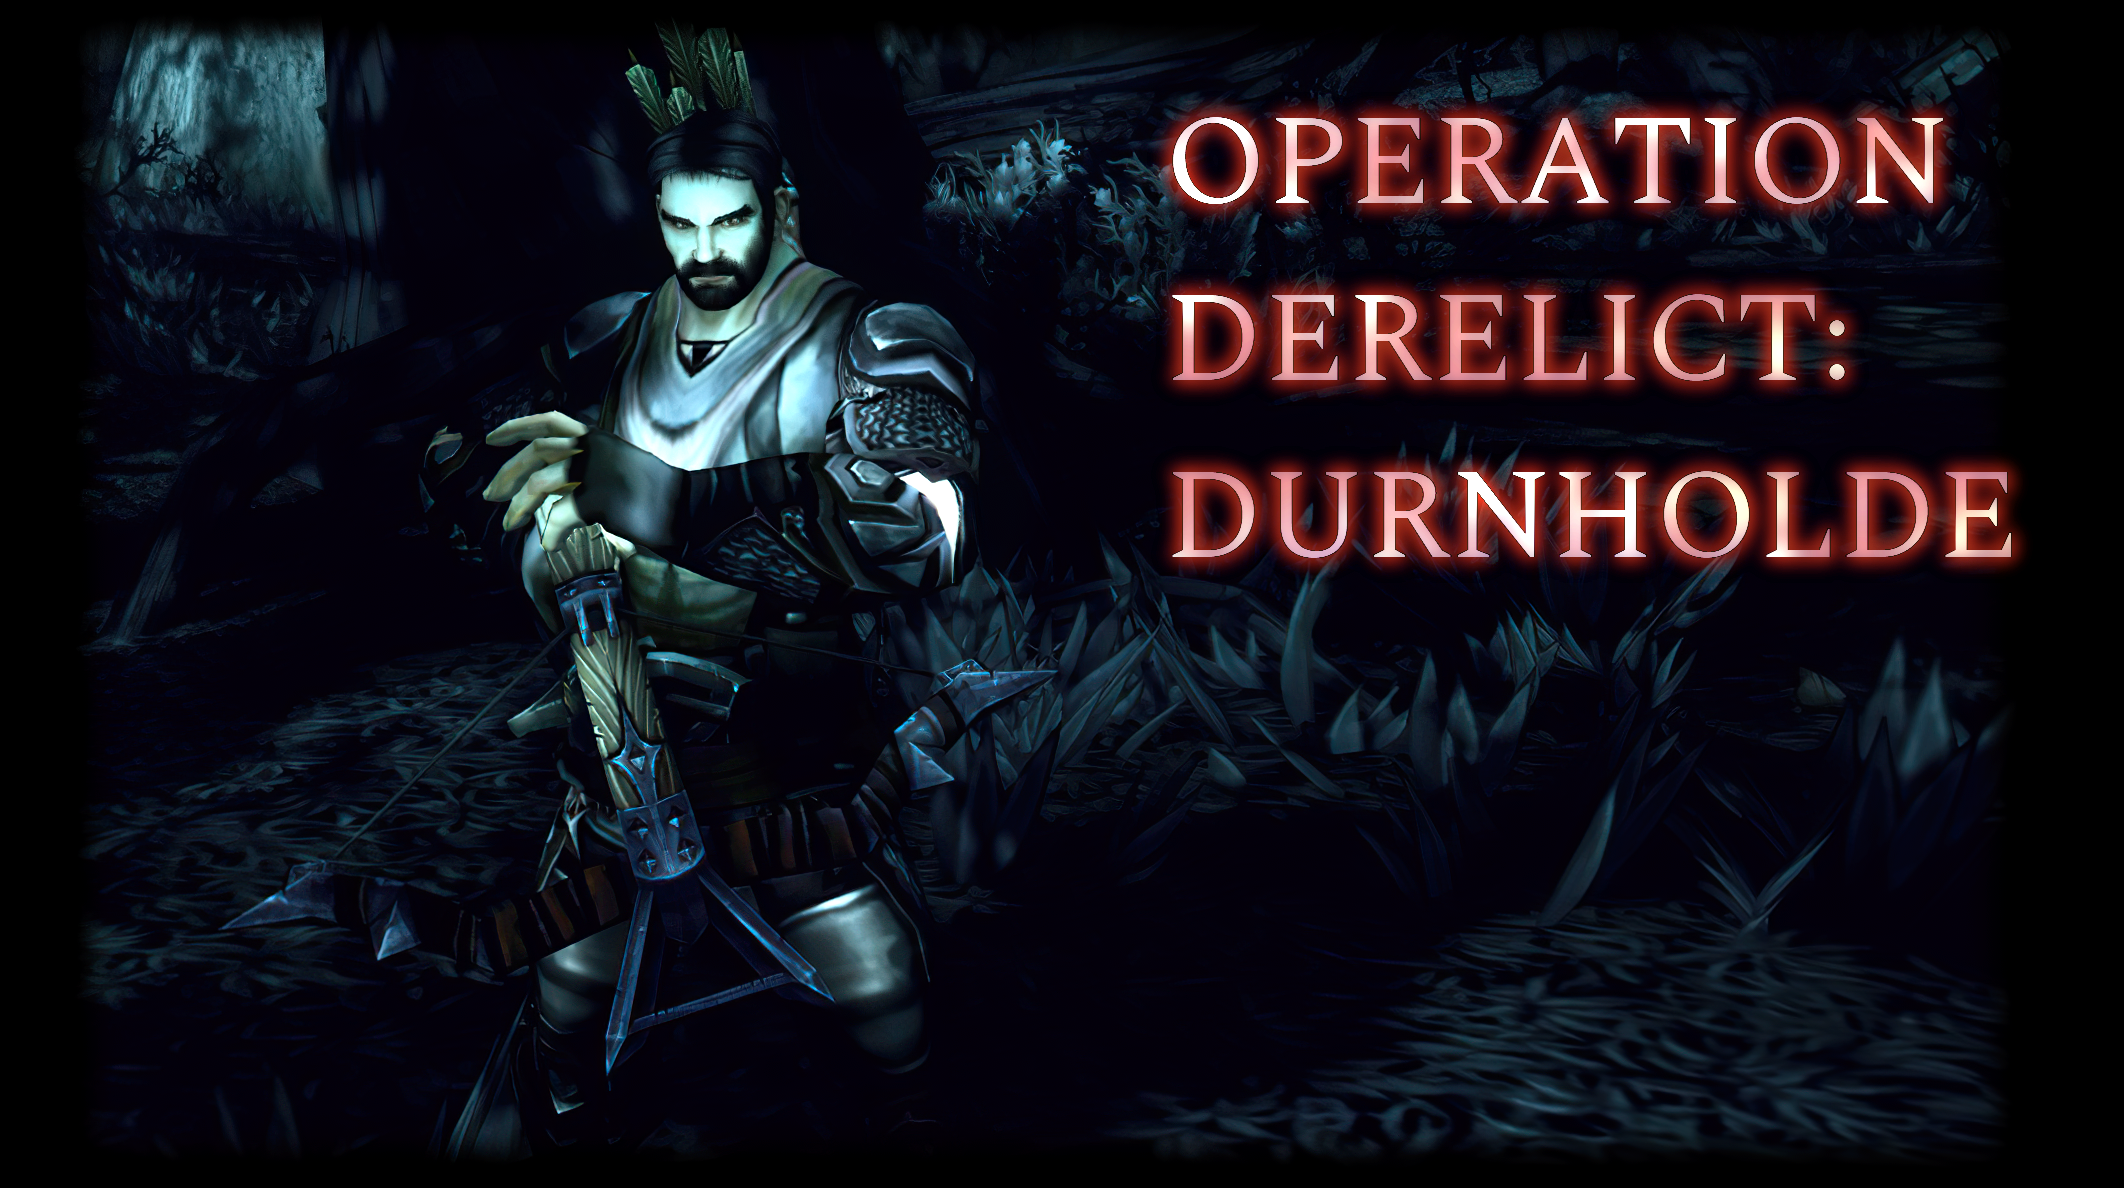 Operation Derelict: The Durnholde Incident